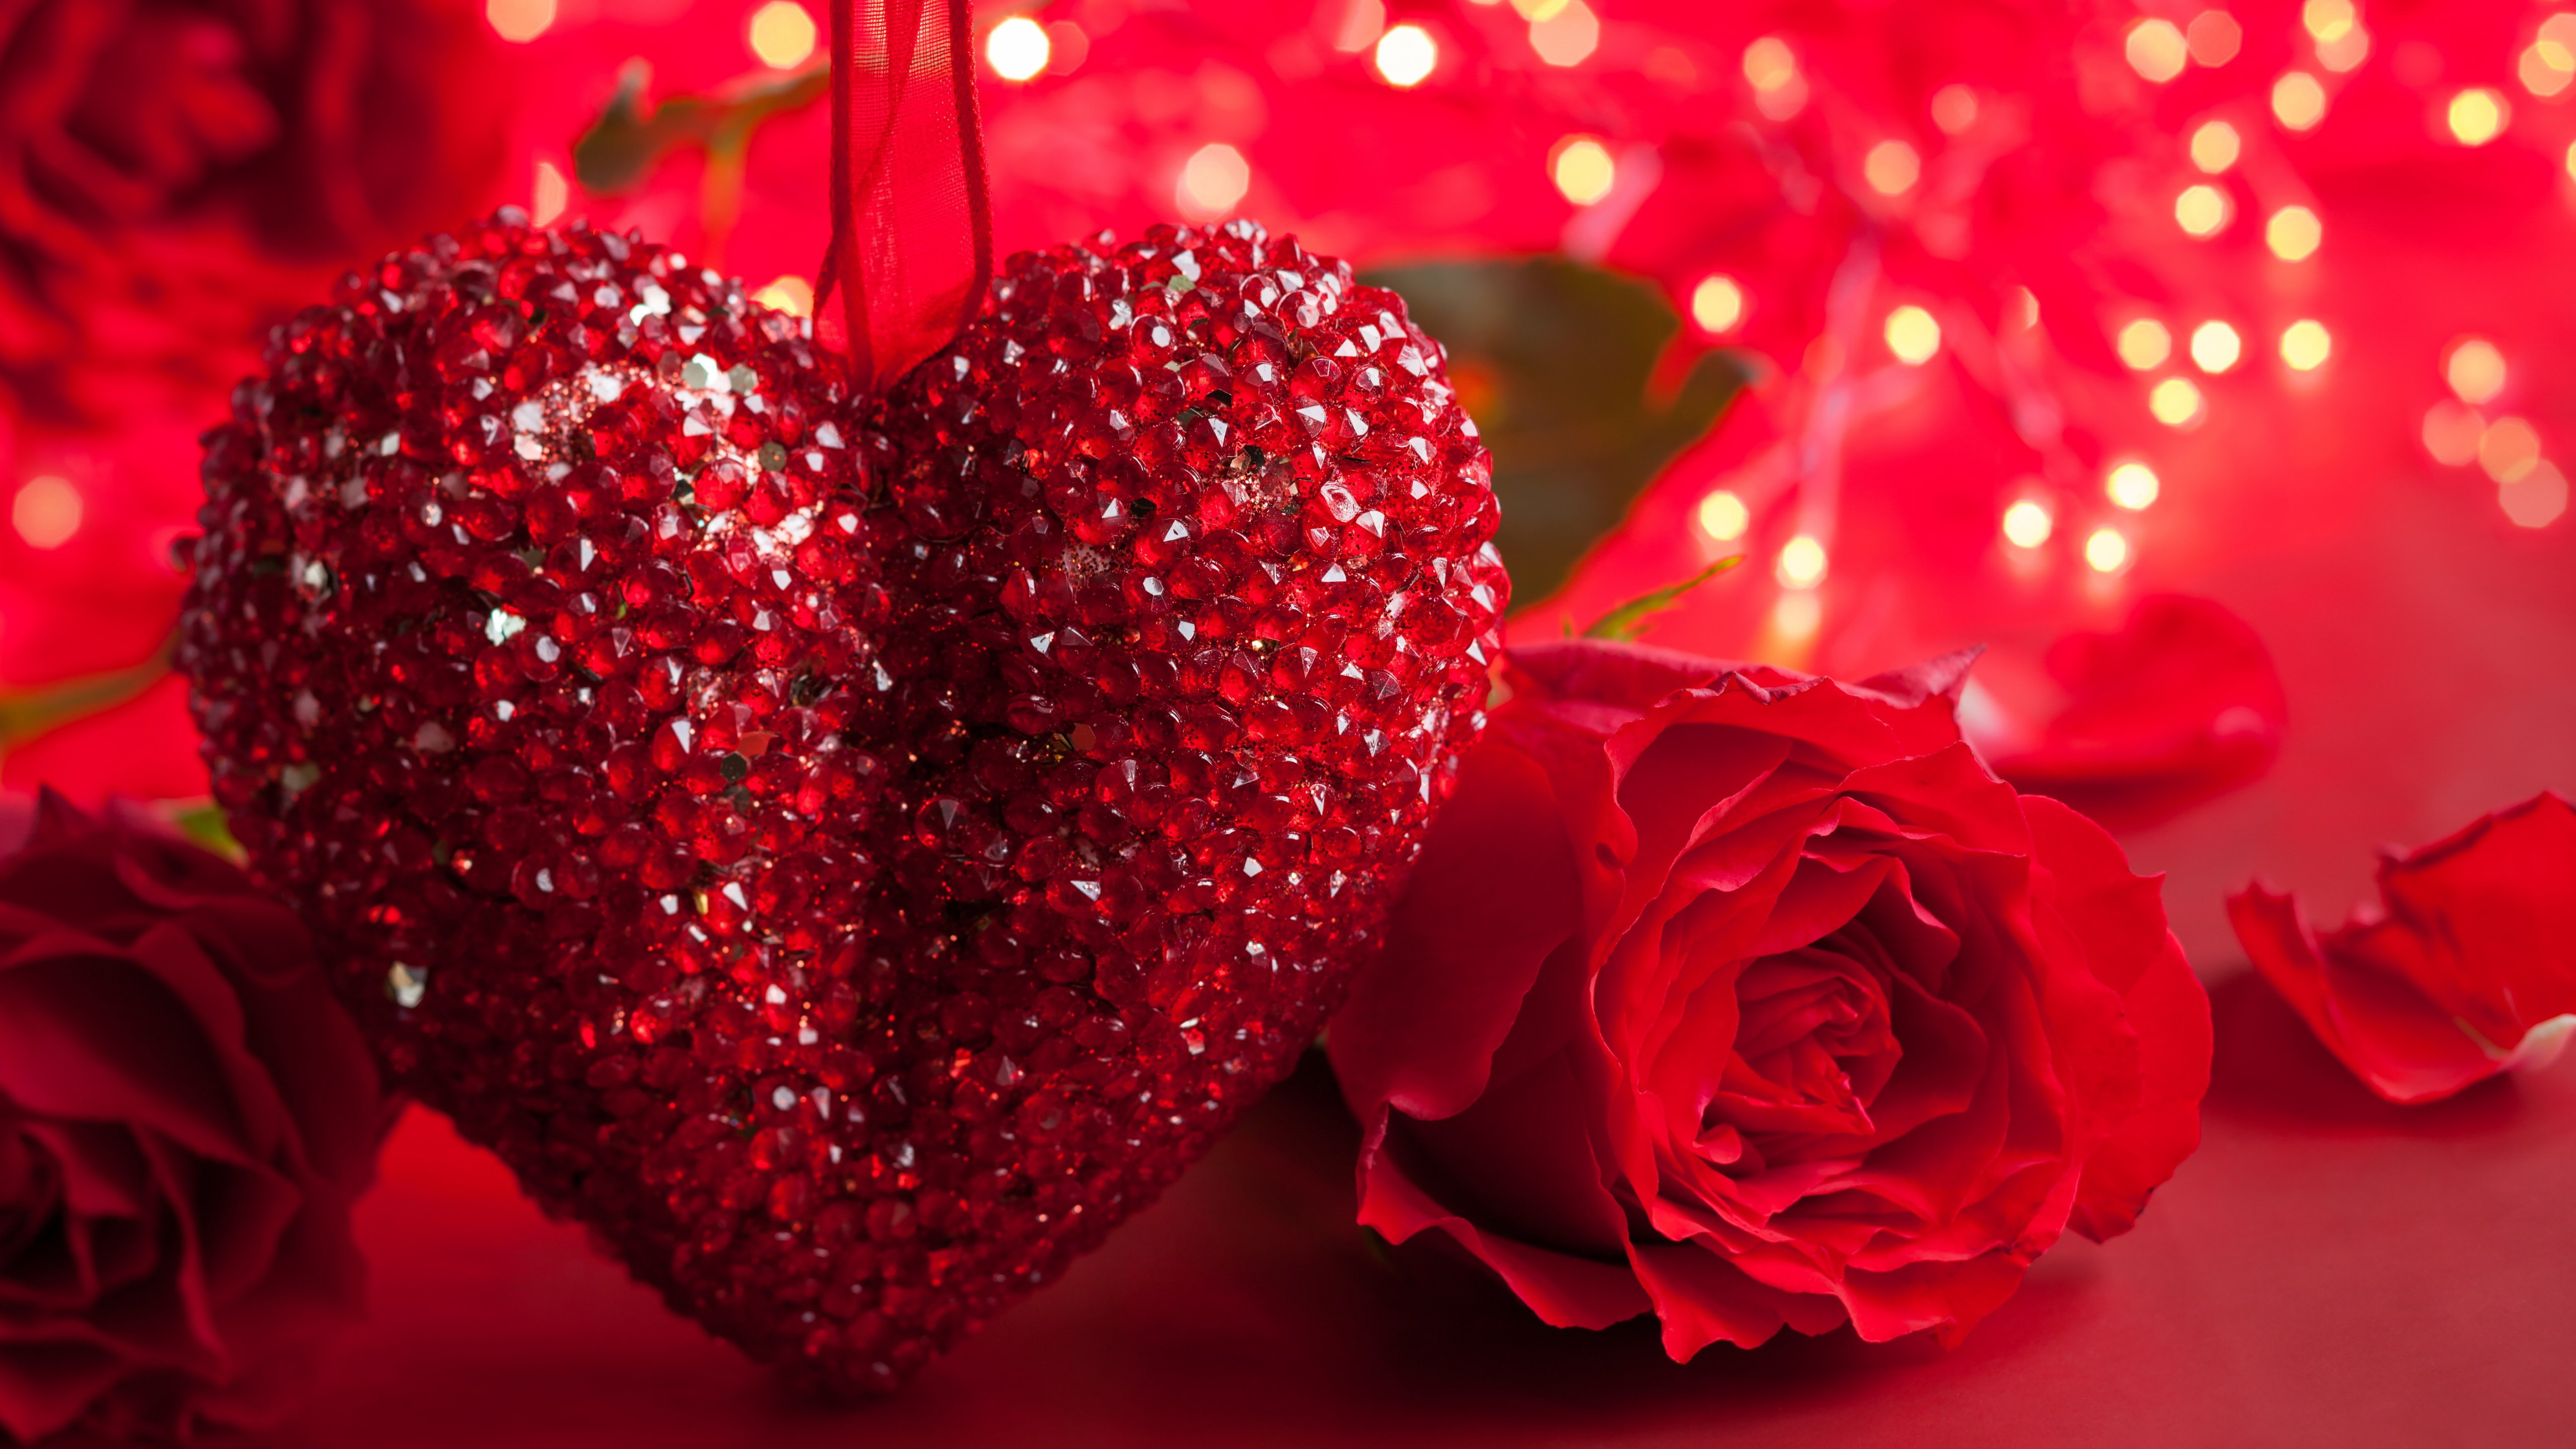 valentine day red romantic rose and heart wallpapervalentine day red romantic rose wallpaper 4k 5k hd 5120x2880